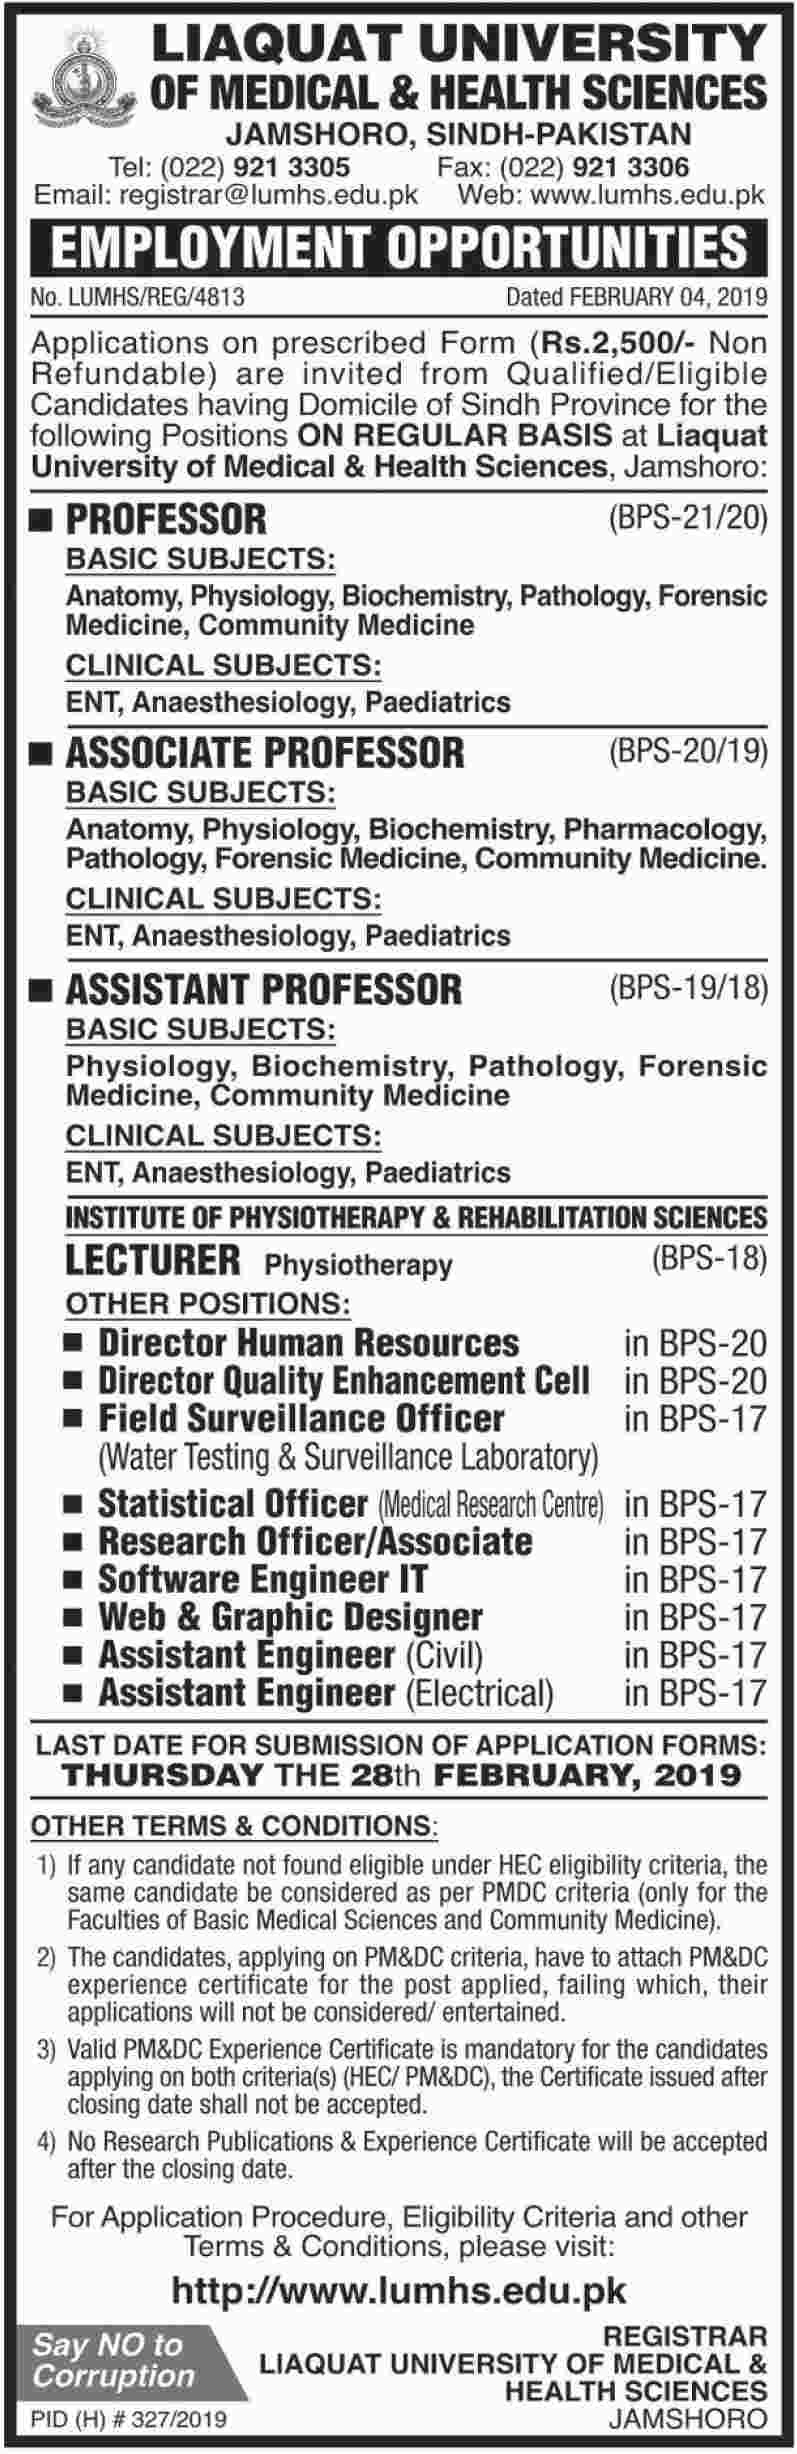 LUMHS Jamshoro Sindh Jobs 2019 Liaquat University of Medical & Health Sciences